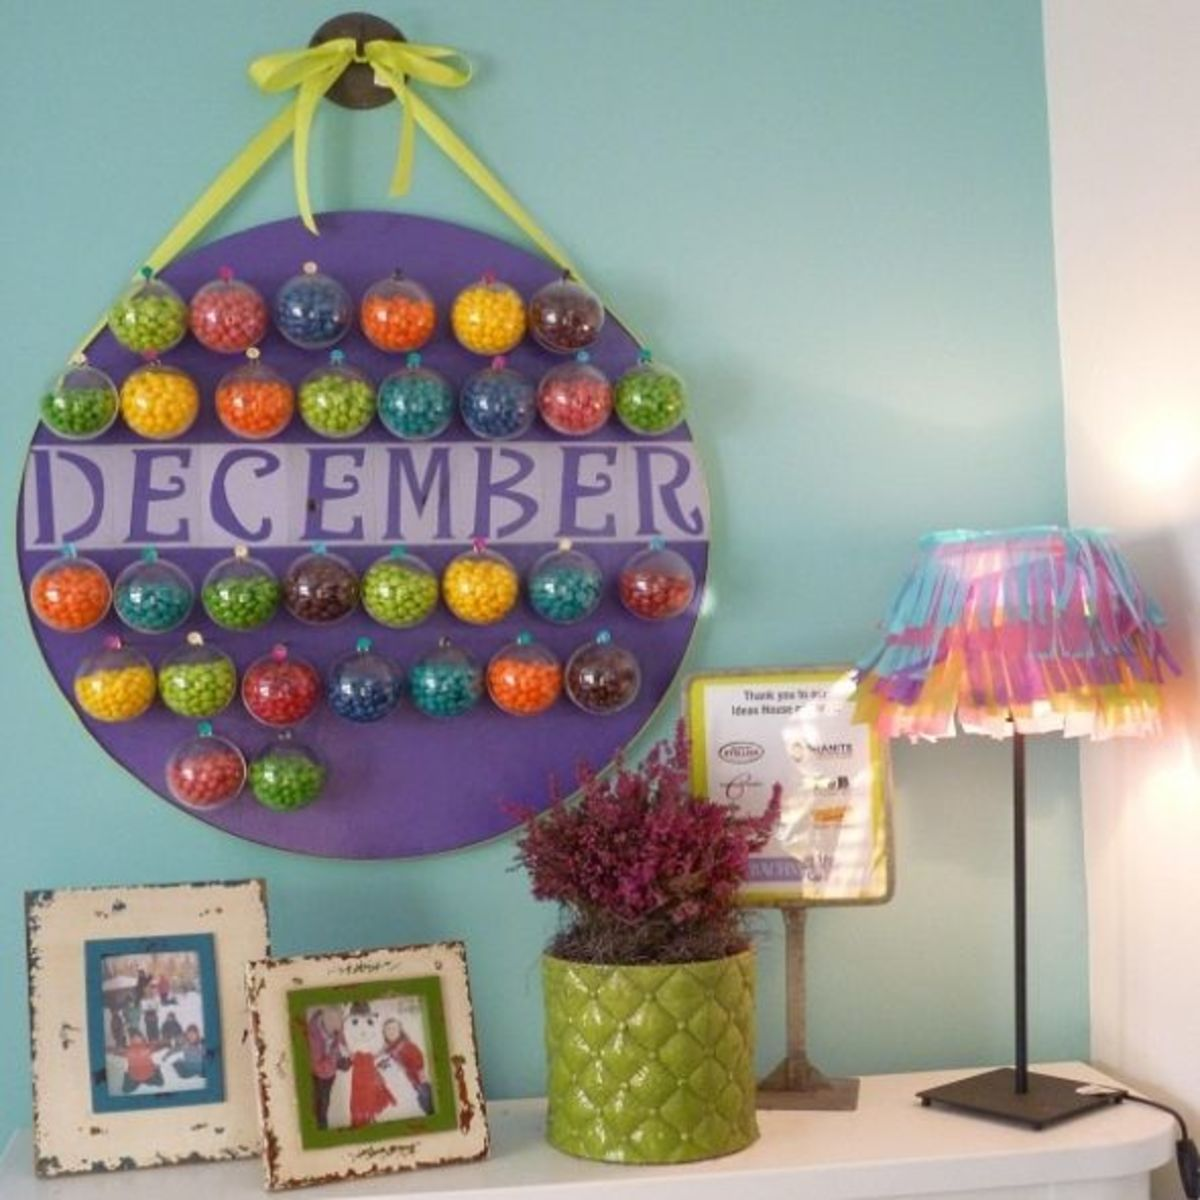 7-upcycled-diy-ideas-to-decorate-a-girls-bedroom